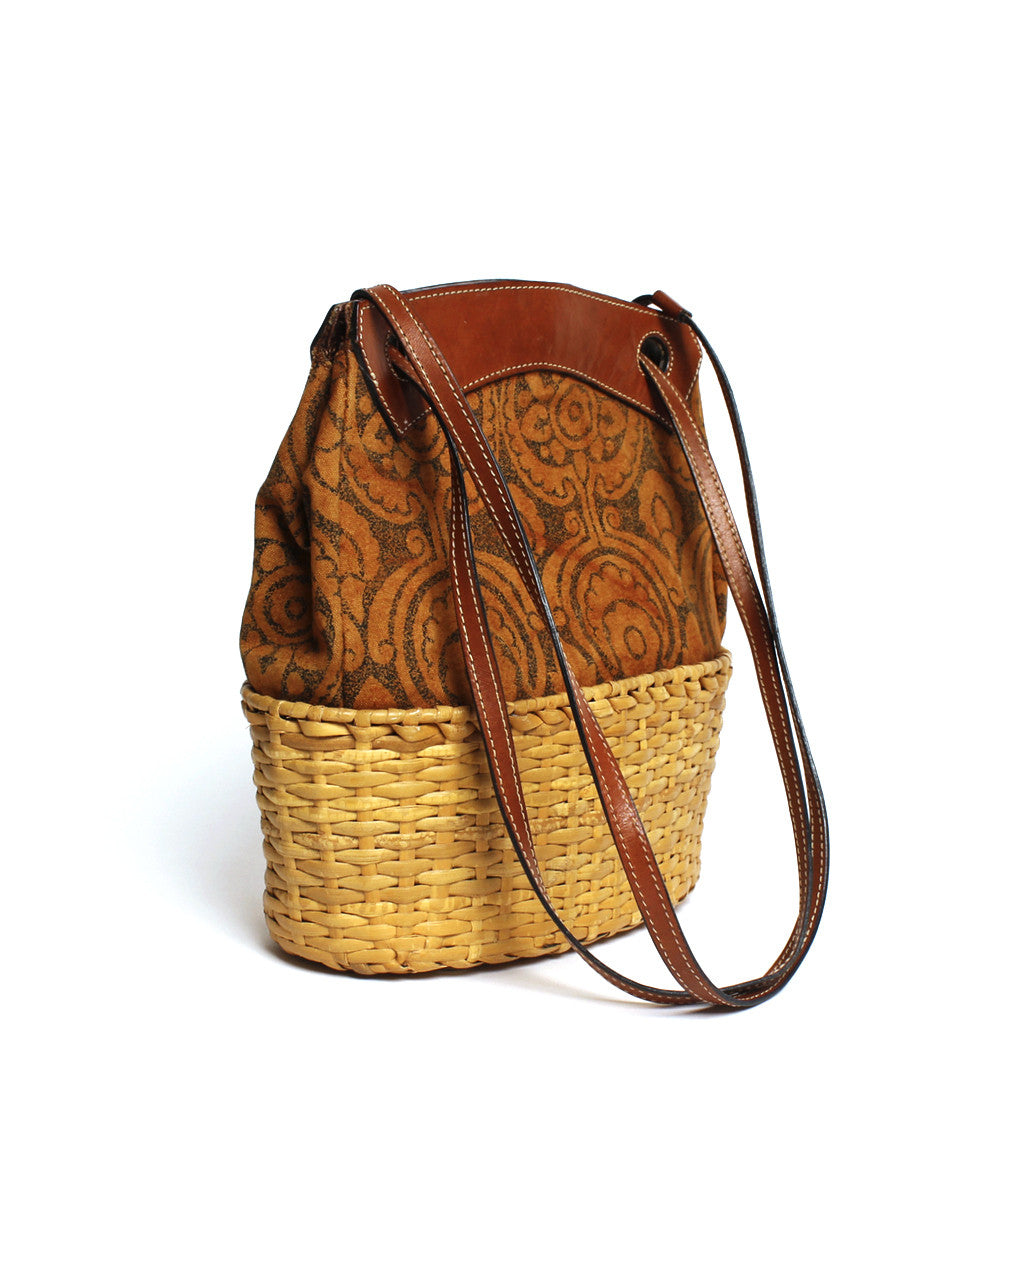 Rodo Sienna Patterned and Wicker Purse